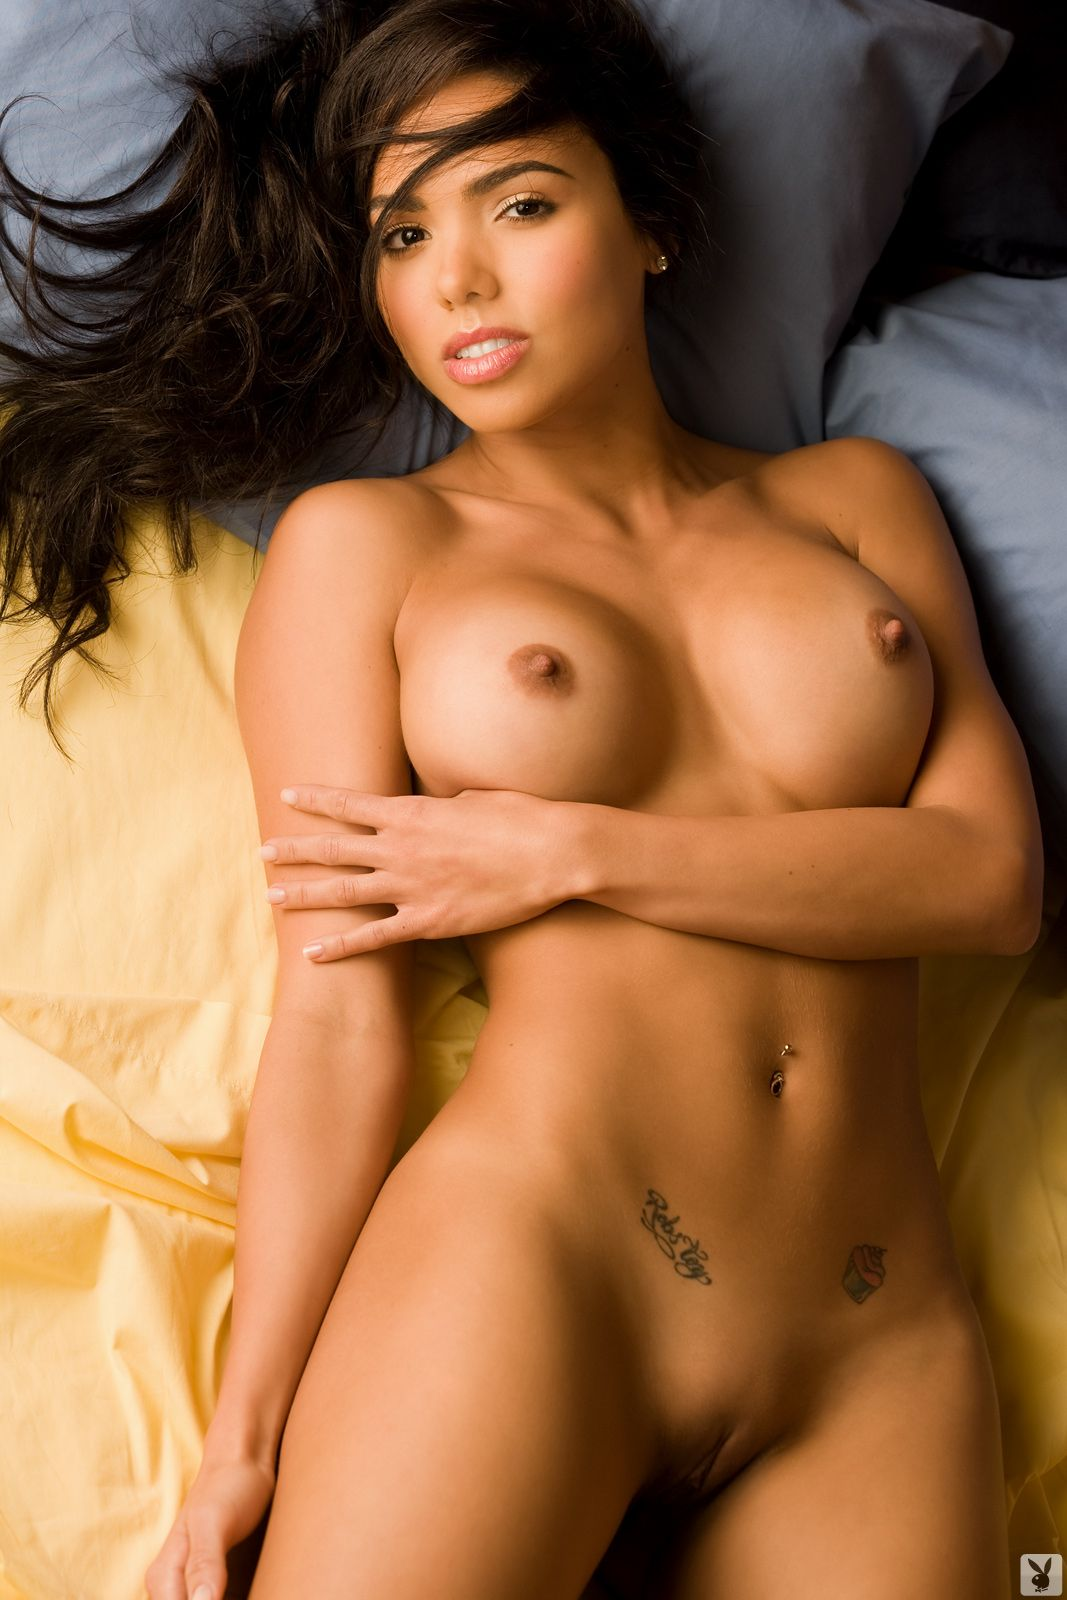 latina-girls-playboy-naked-my-daughters-pussy-pic